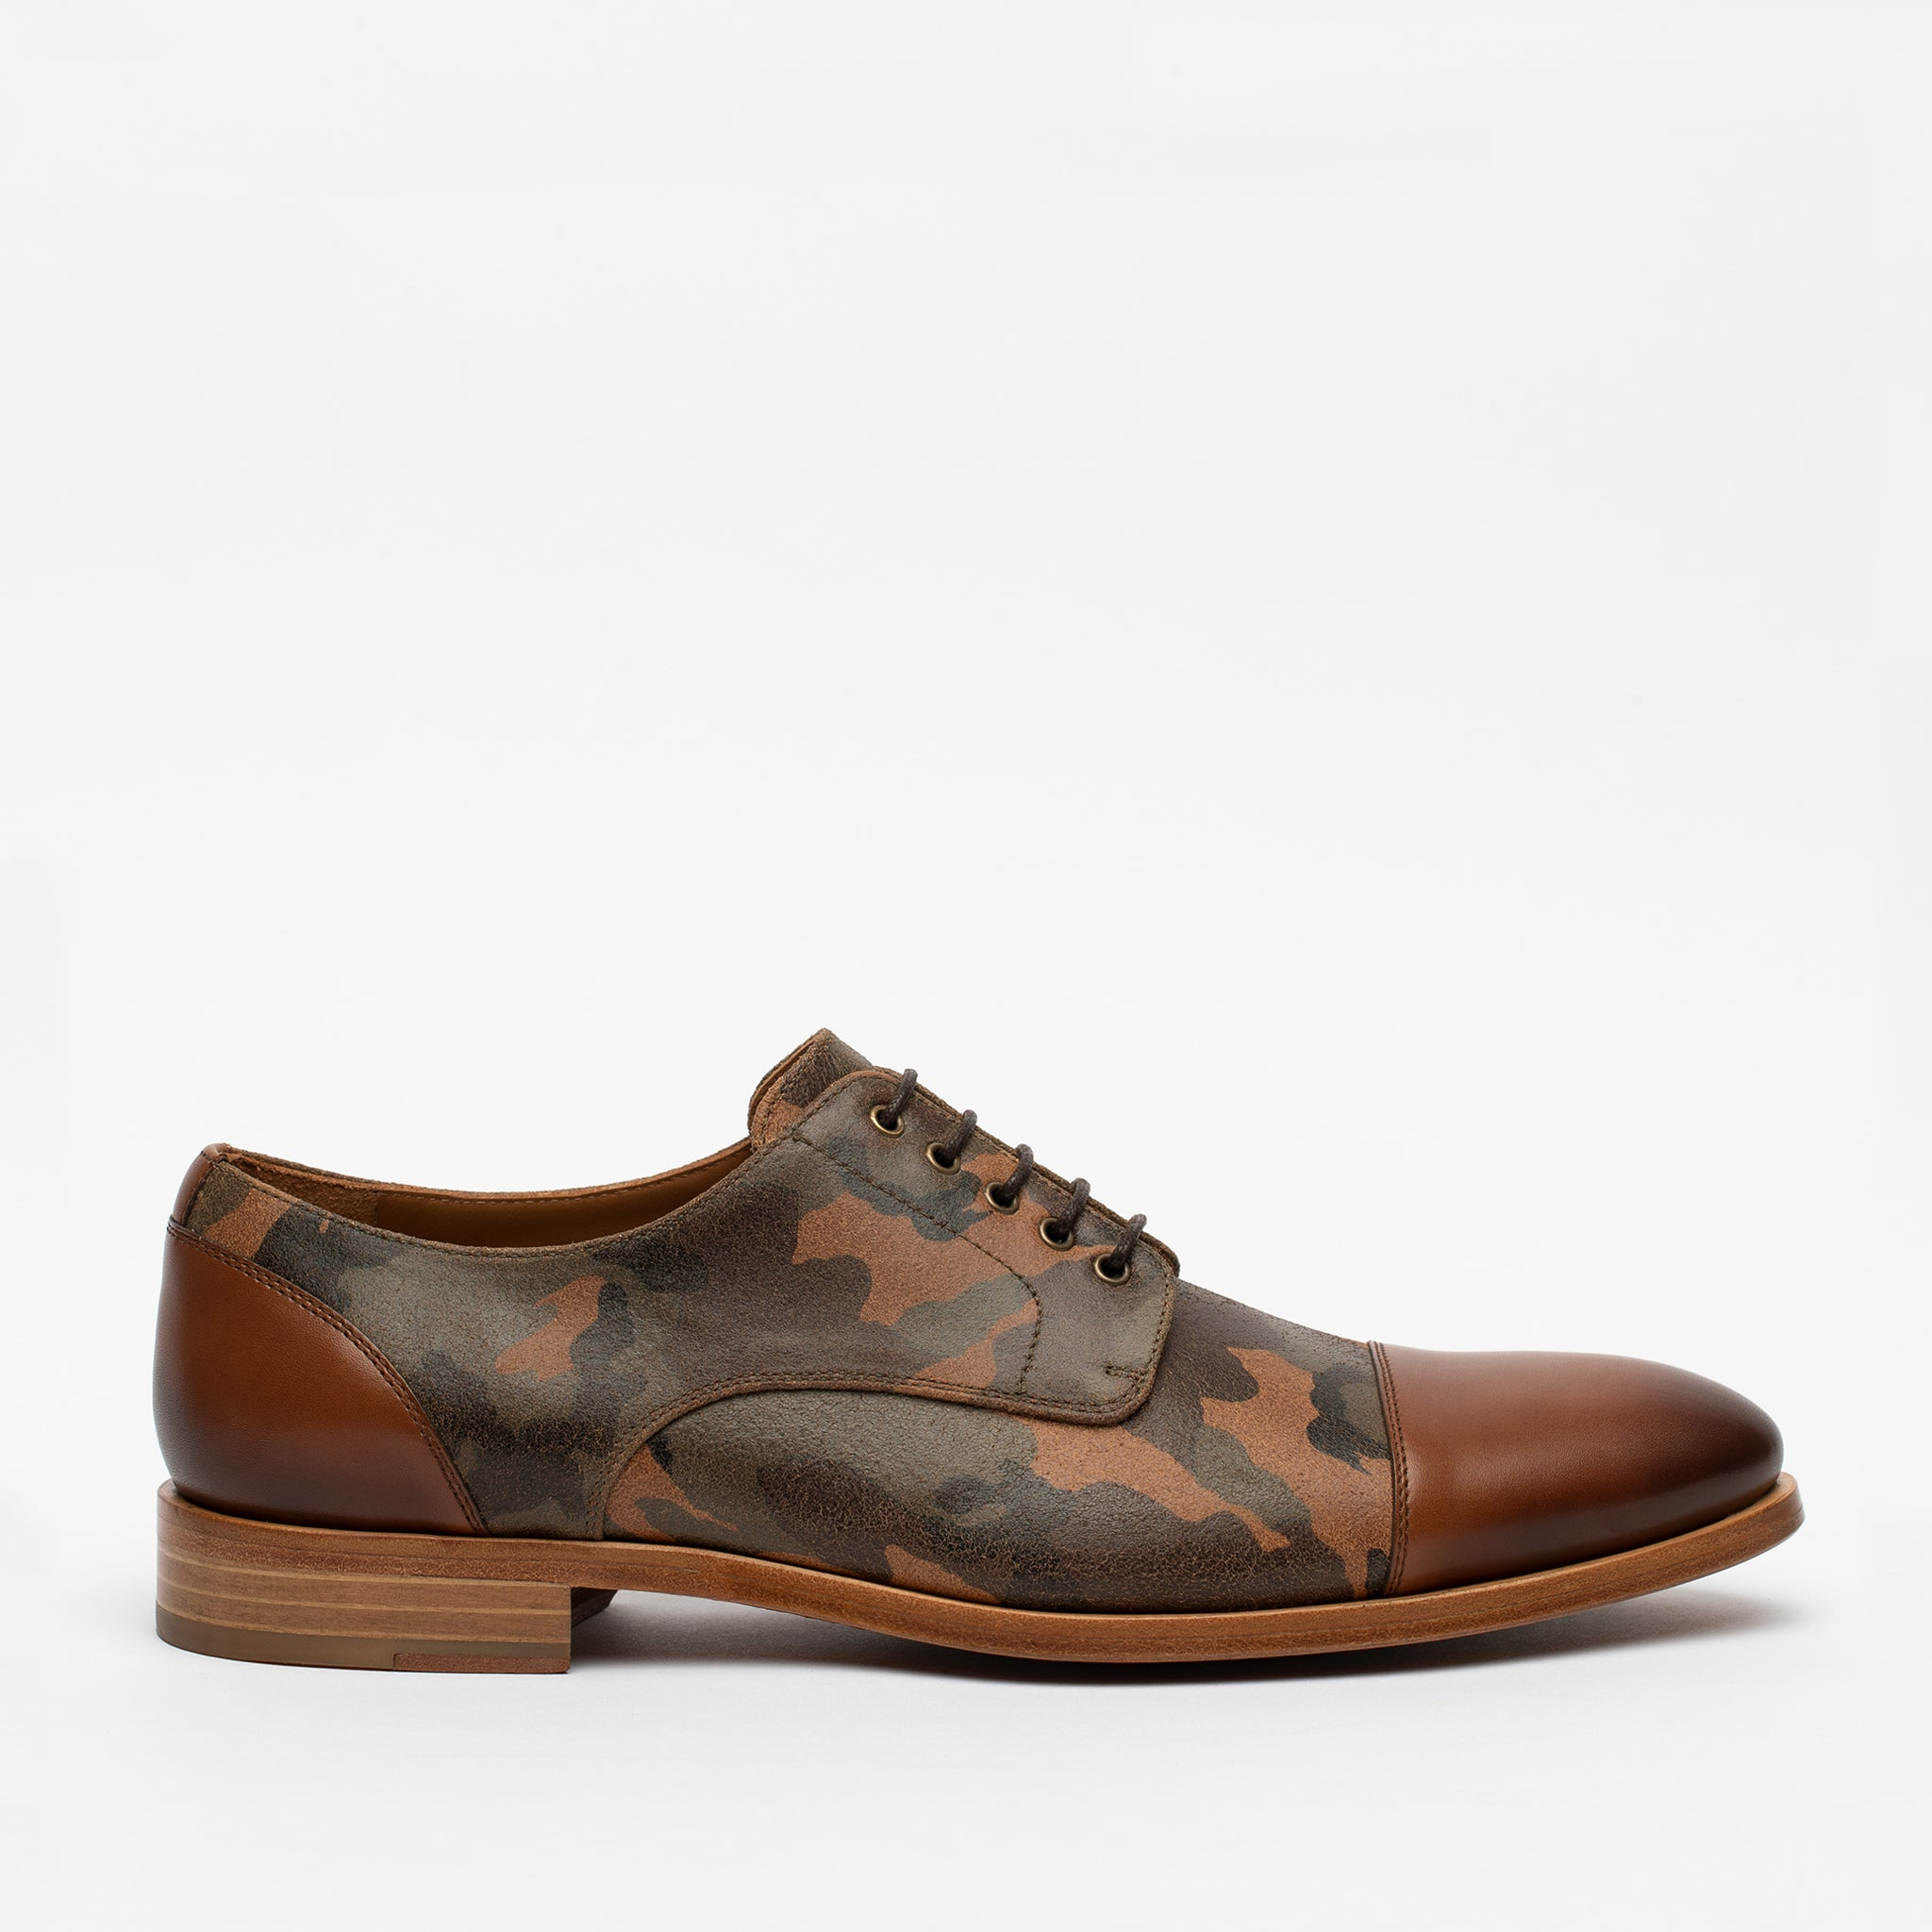 Troy Shoe in Camo side view